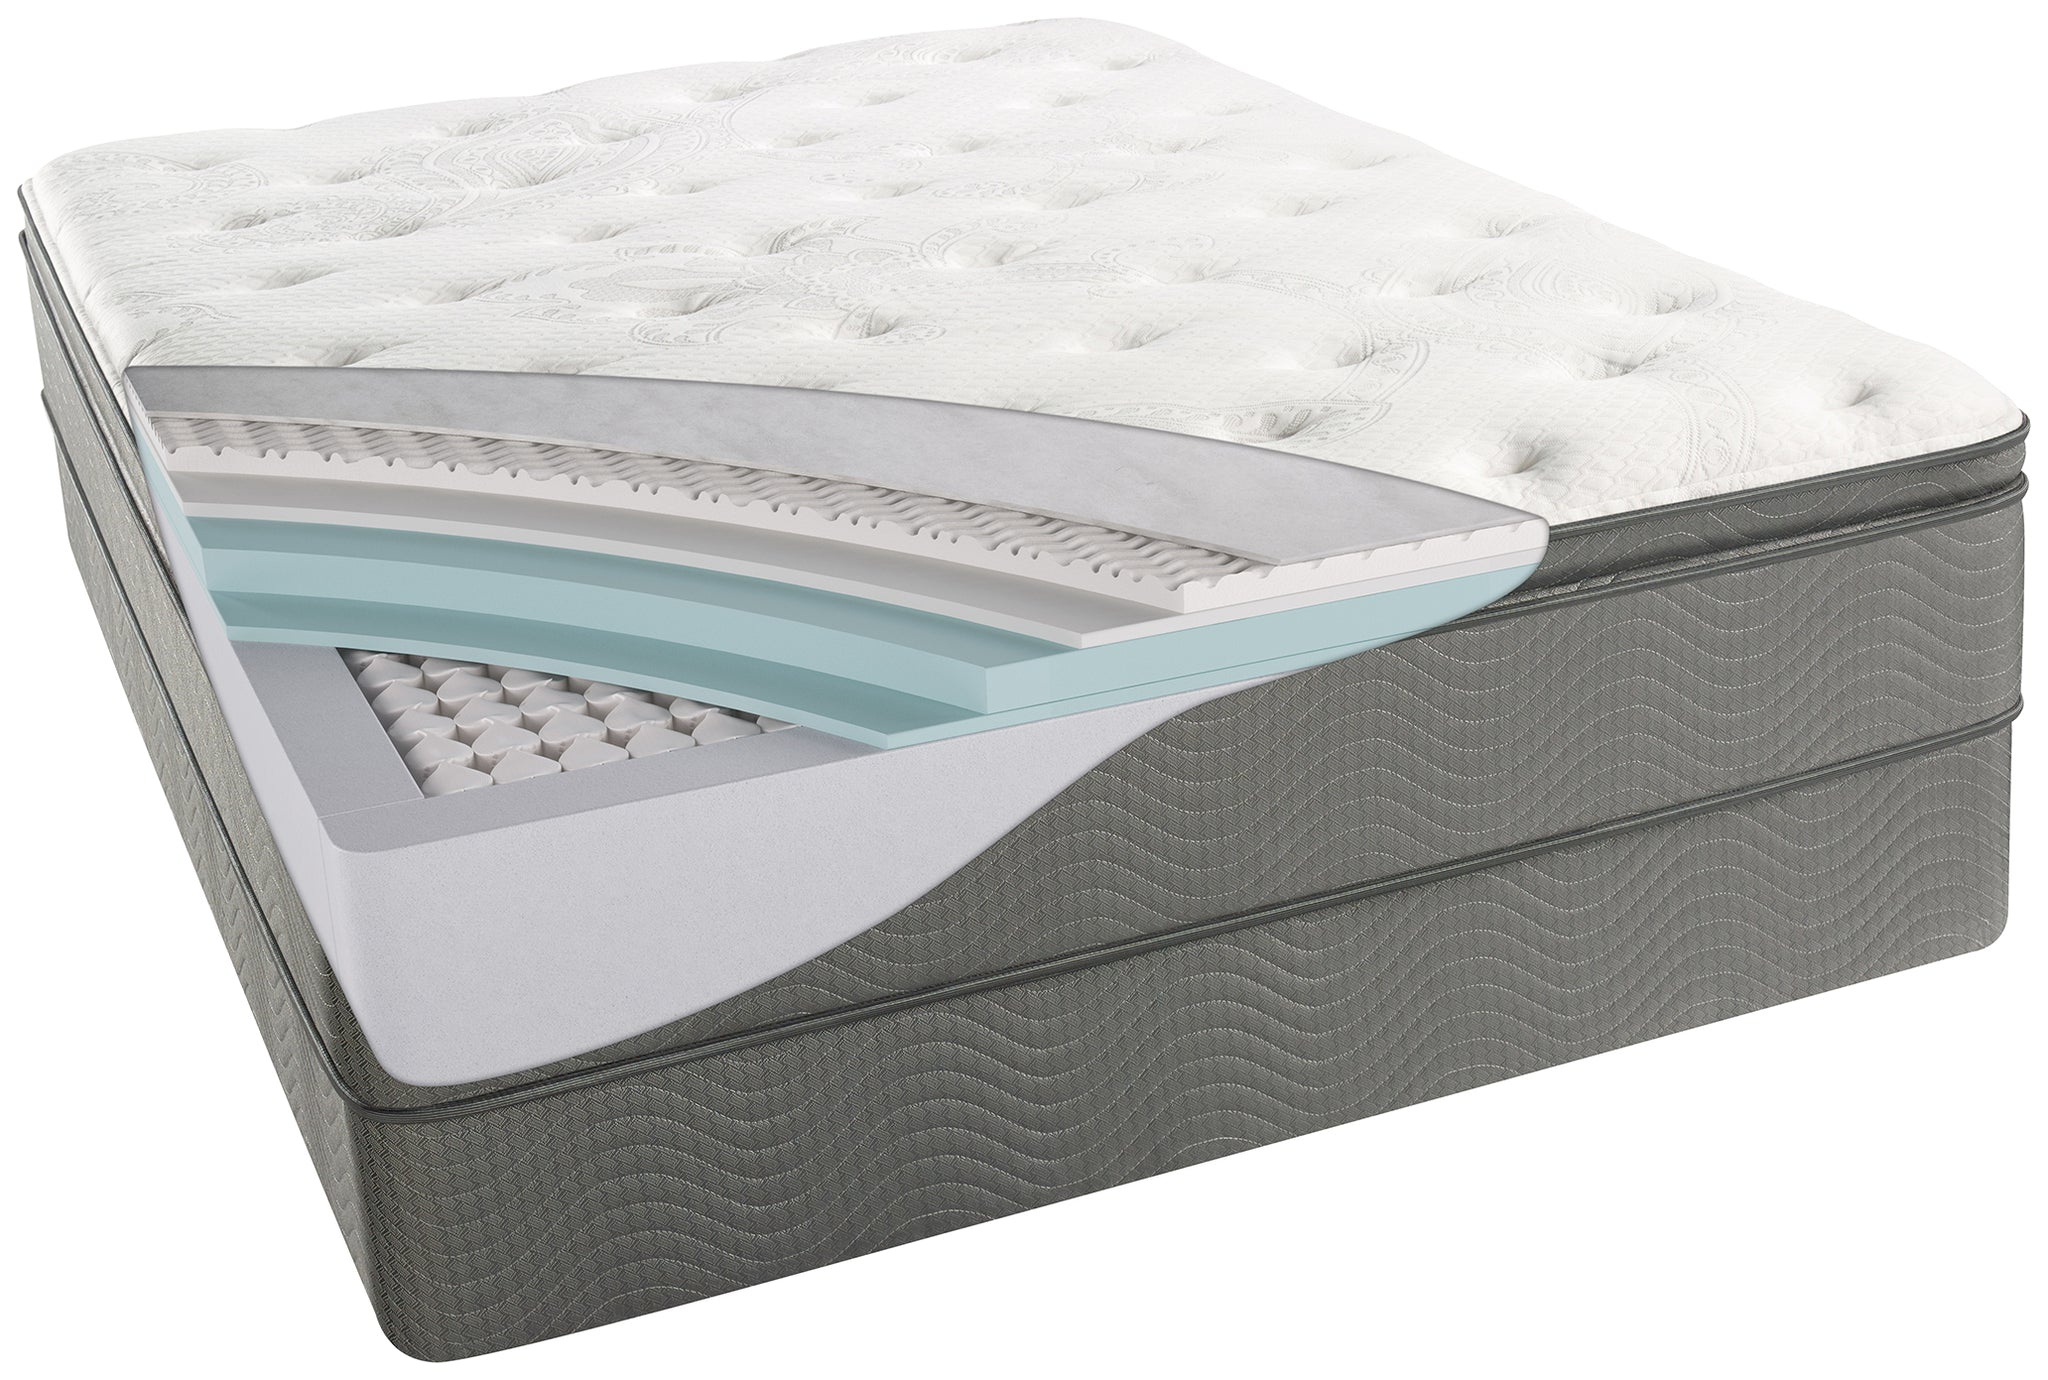 mattress perfect pillow elite sleeper platinum serta centennial watch top topper